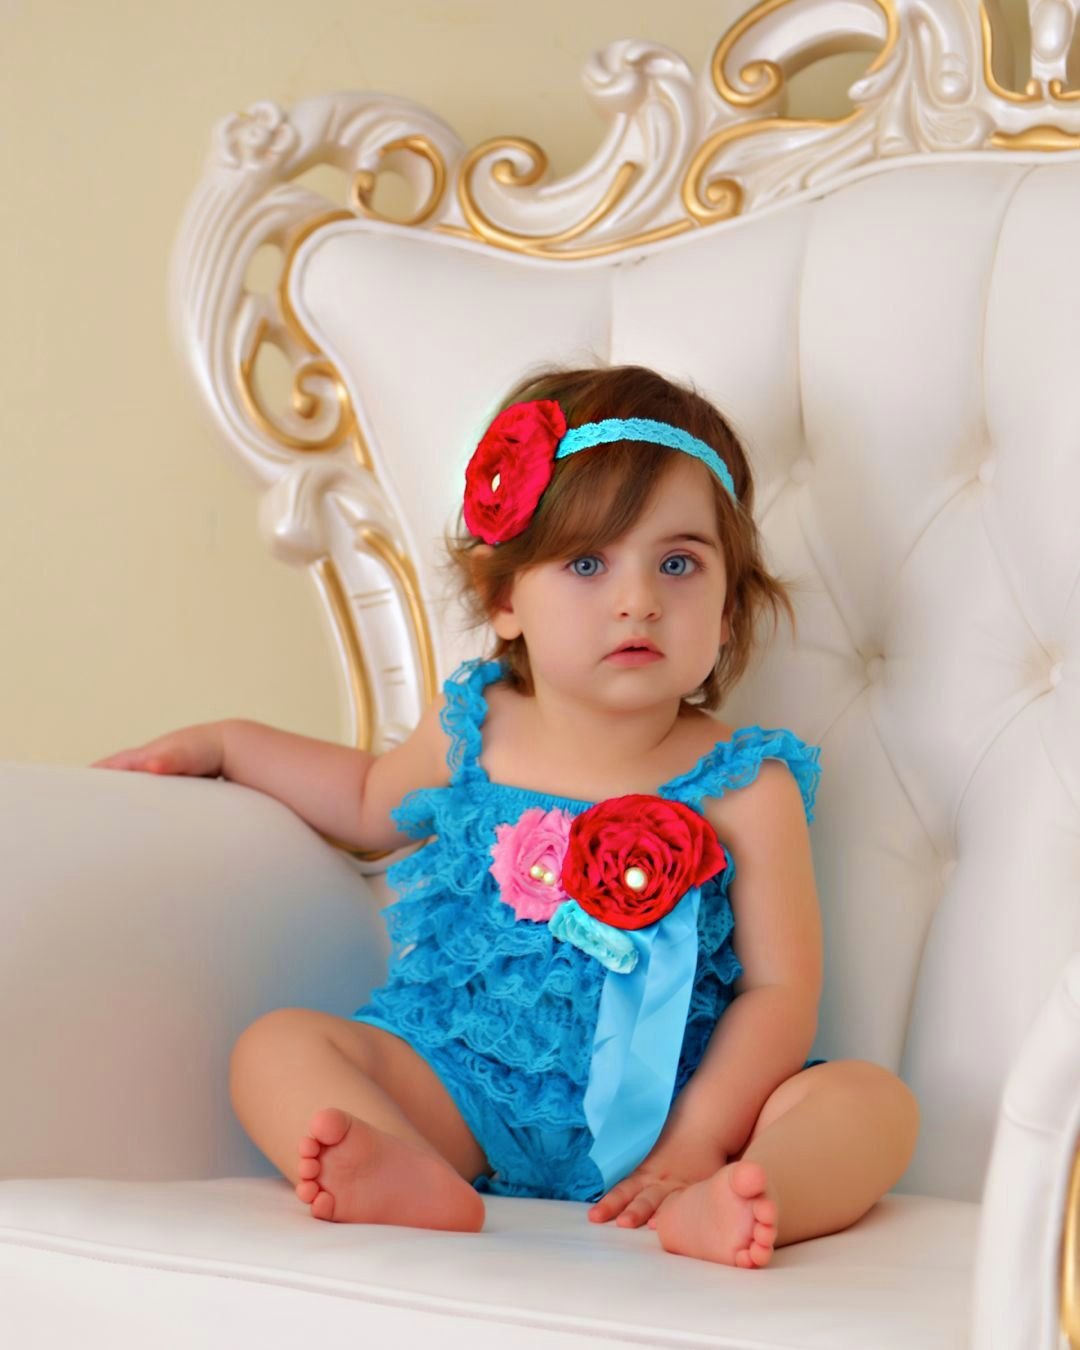 31f0f63523c5 Lace Petti Romper - Baby Romper - Turquoise with Pink Embellishments ...